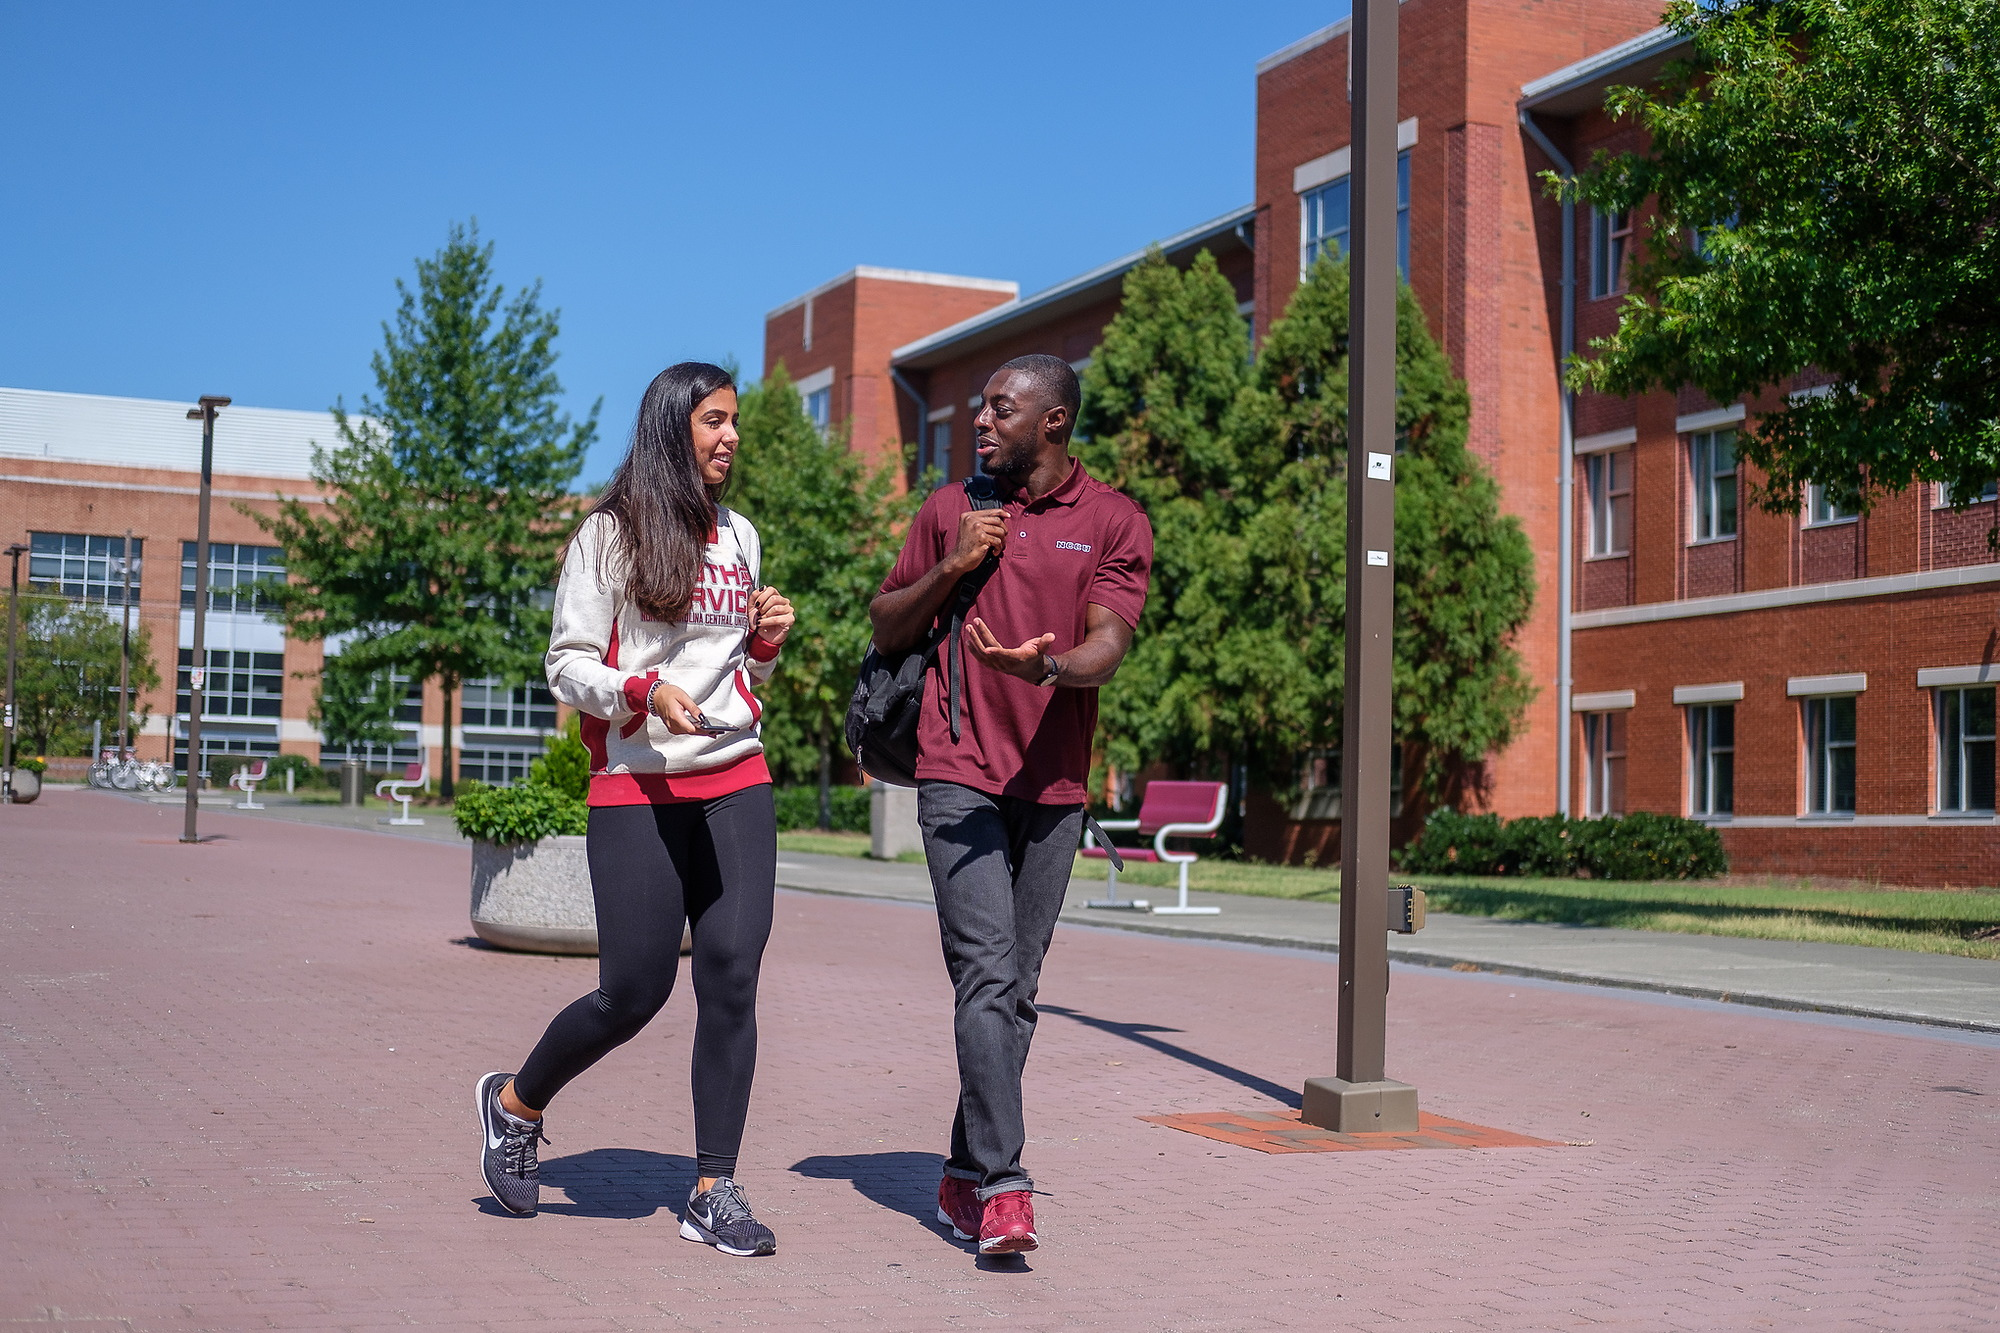 Transfered students are walking across campus